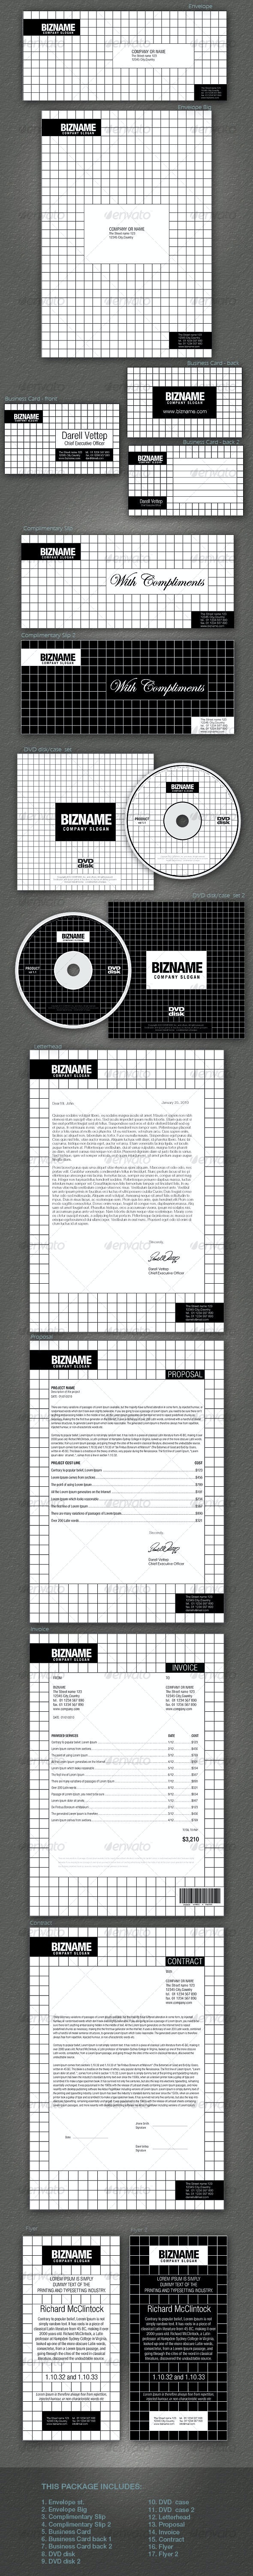 FULL CORPORATE ID PACKAGE - BIZNAME v1 - Stationery Print Templates